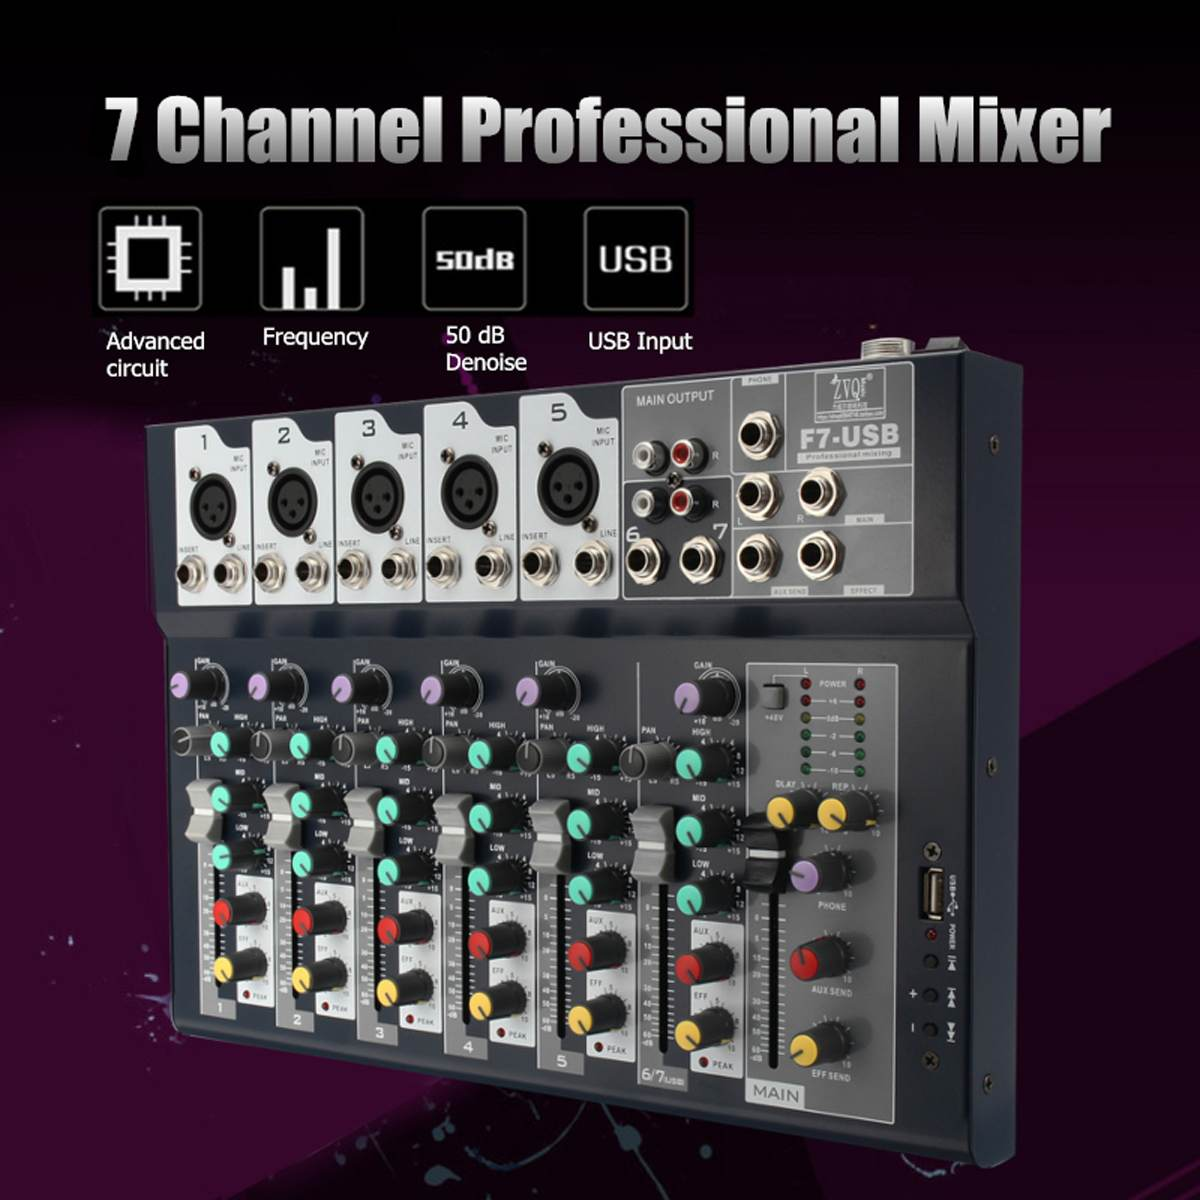 LEORY Mini 7 Channel Professional Stage Live Digital Studio Audio Mixer USB AUX Mixing Console DJ  KTV Show 48V Phantom PowerLEORY Mini 7 Channel Professional Stage Live Digital Studio Audio Mixer USB AUX Mixing Console DJ  KTV Show 48V Phantom Power